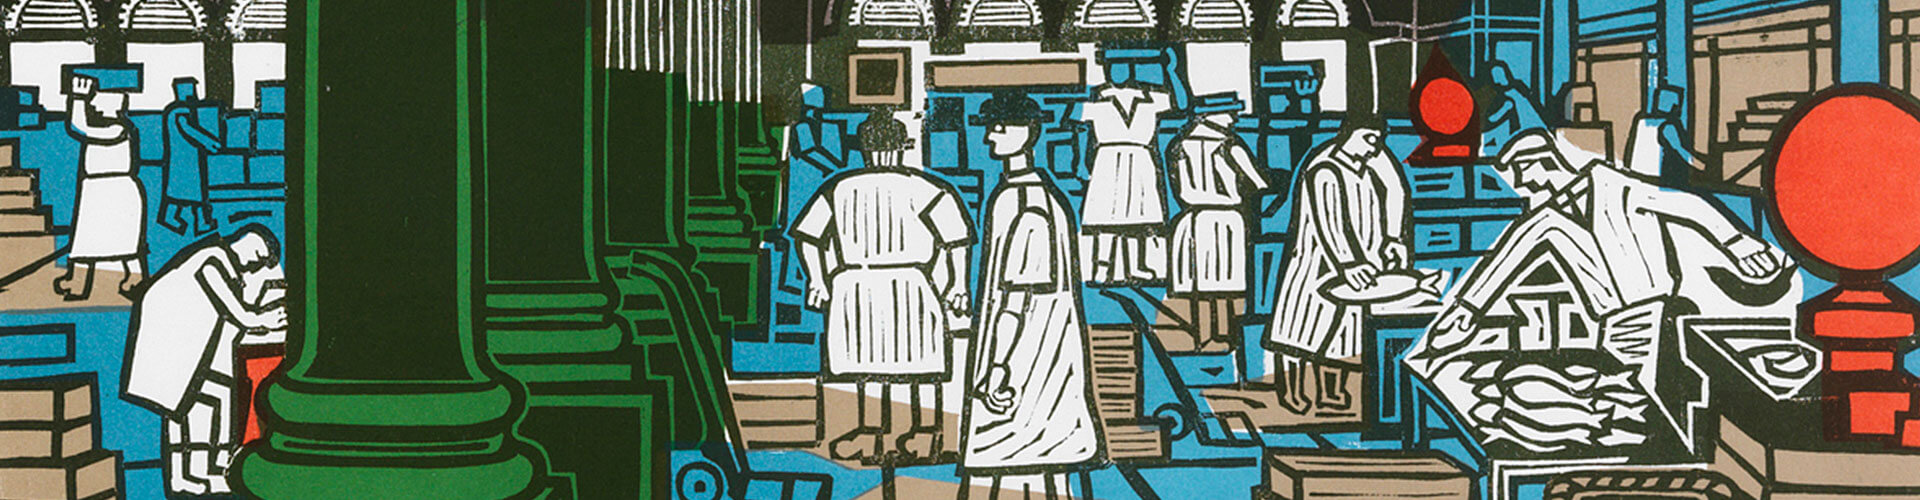 Billingsgate Market, Greeting Card by Edward Bawden - Featured on Desktop Devices